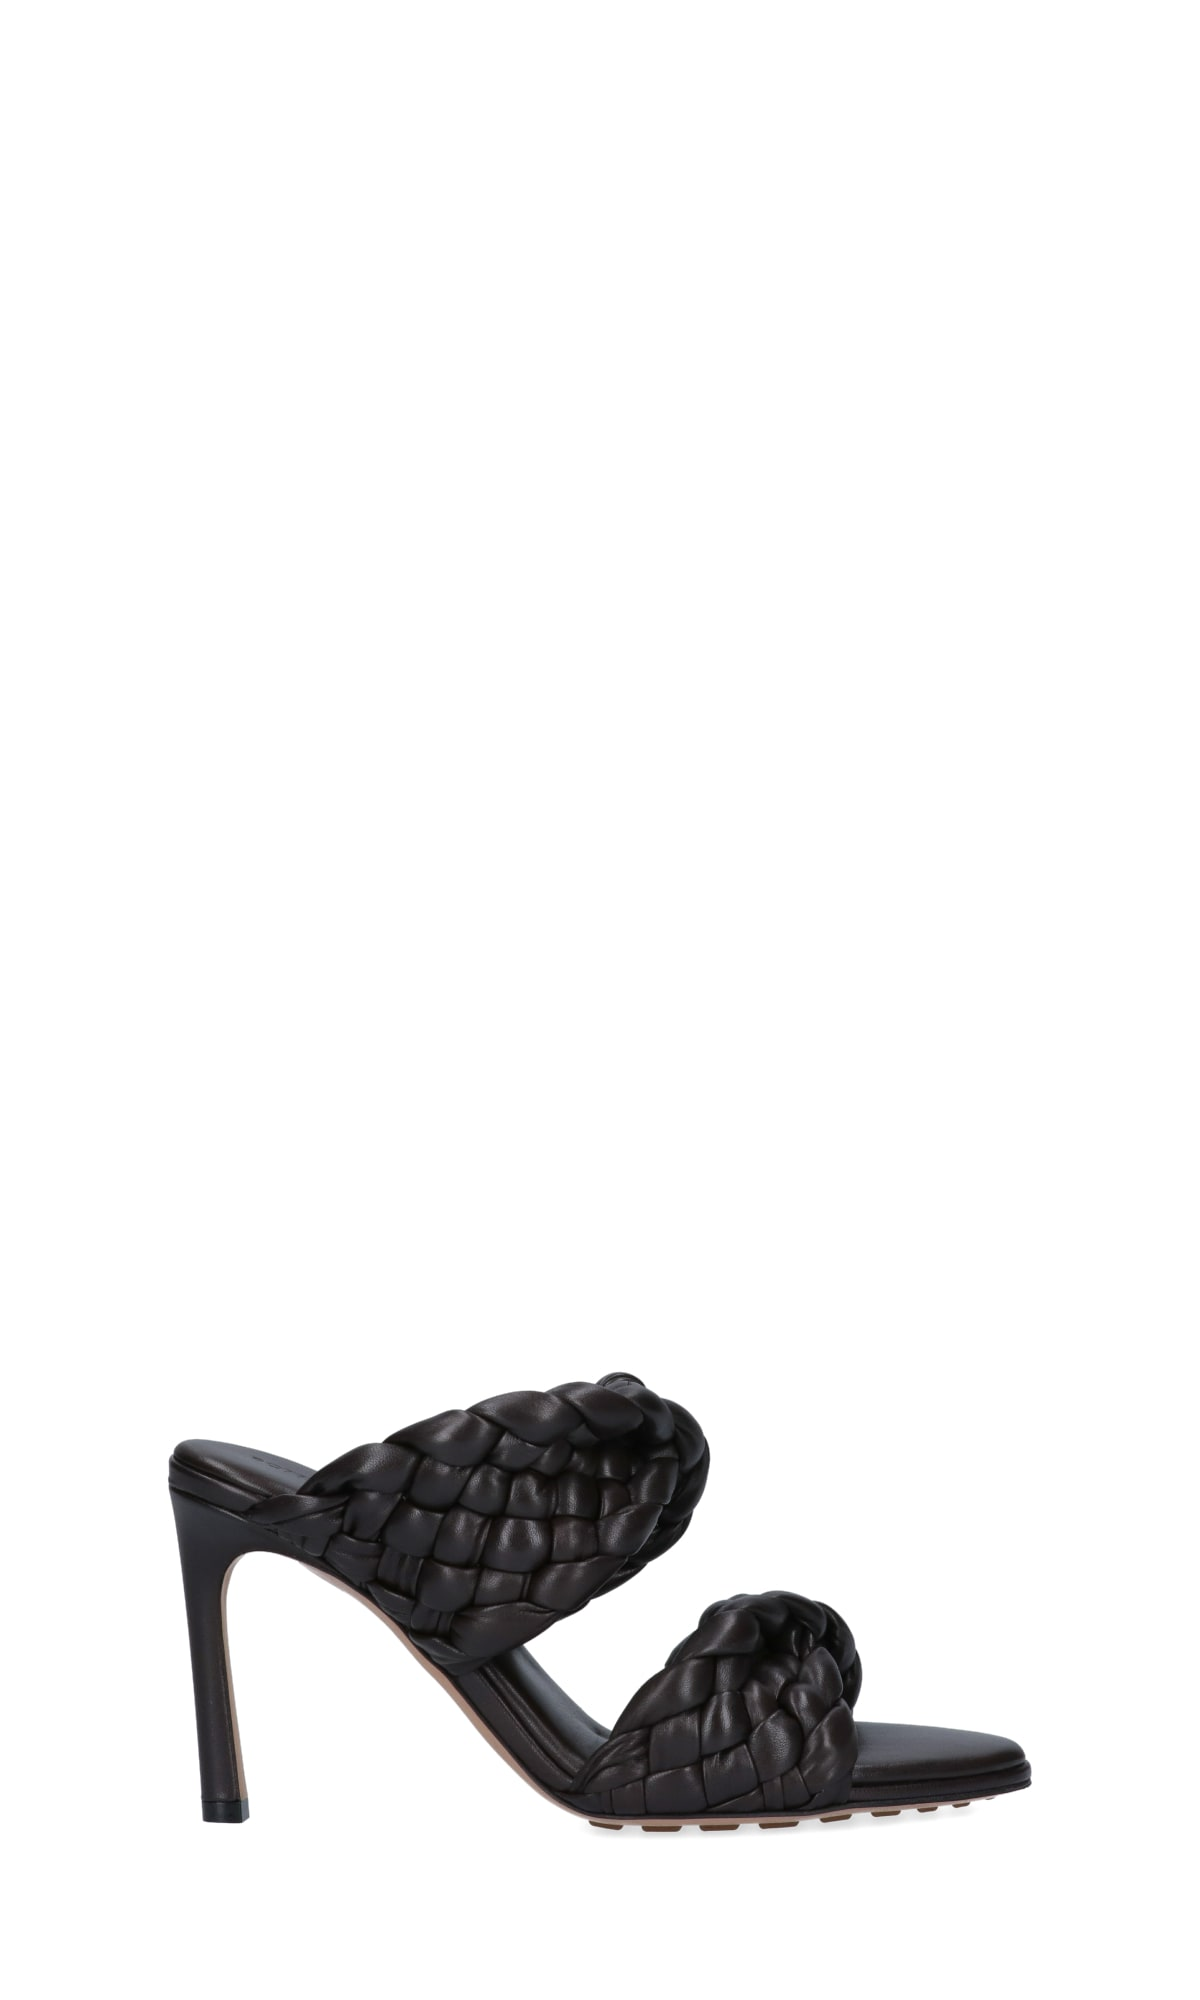 Bottega Veneta High-heeled shoe